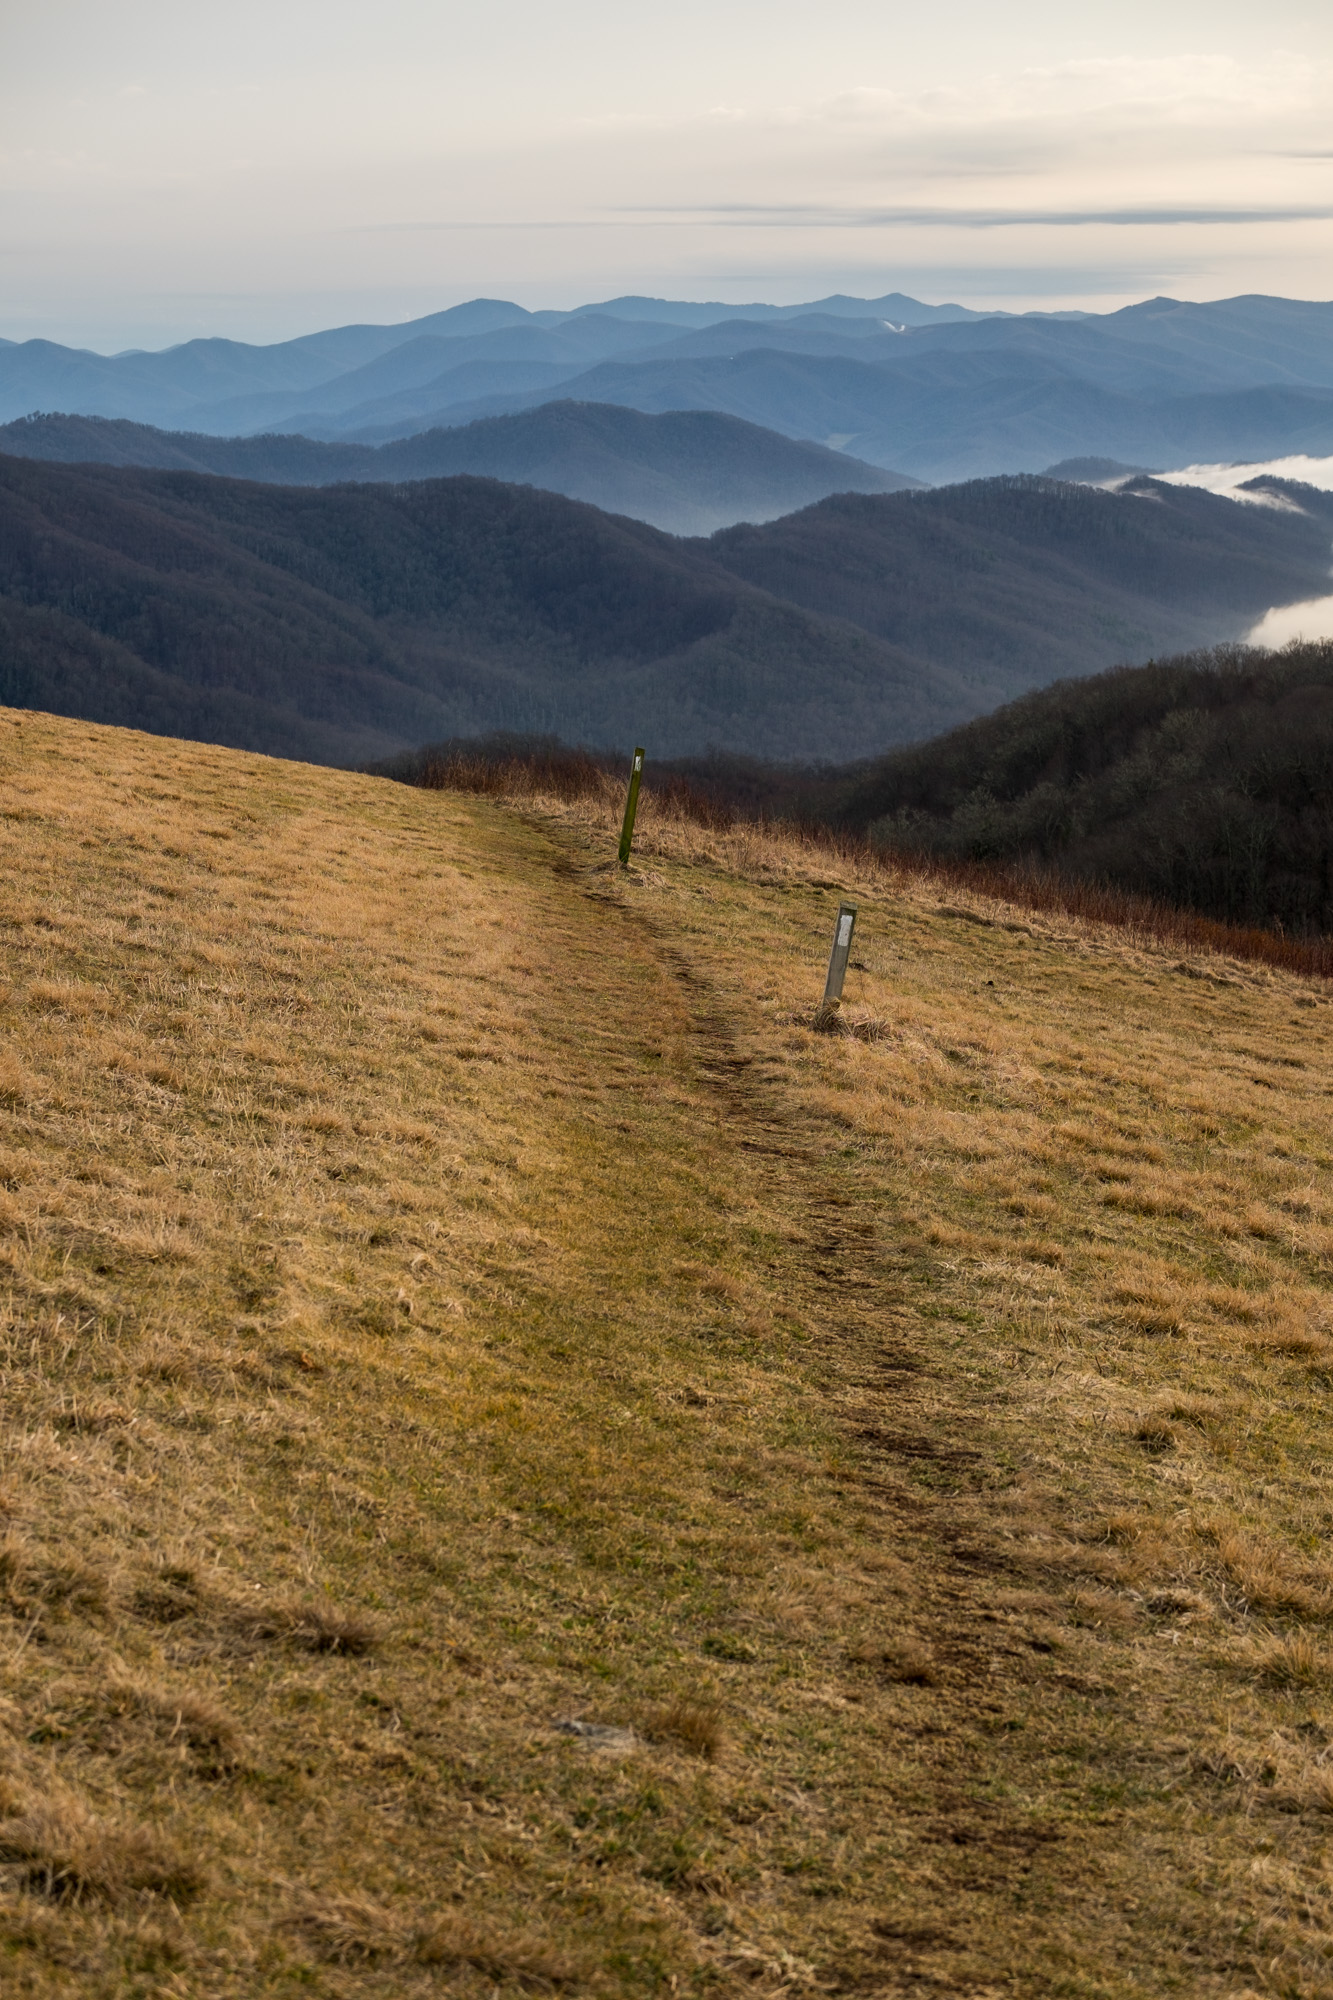 On top of Max Patch we found the Appalachian Trail.